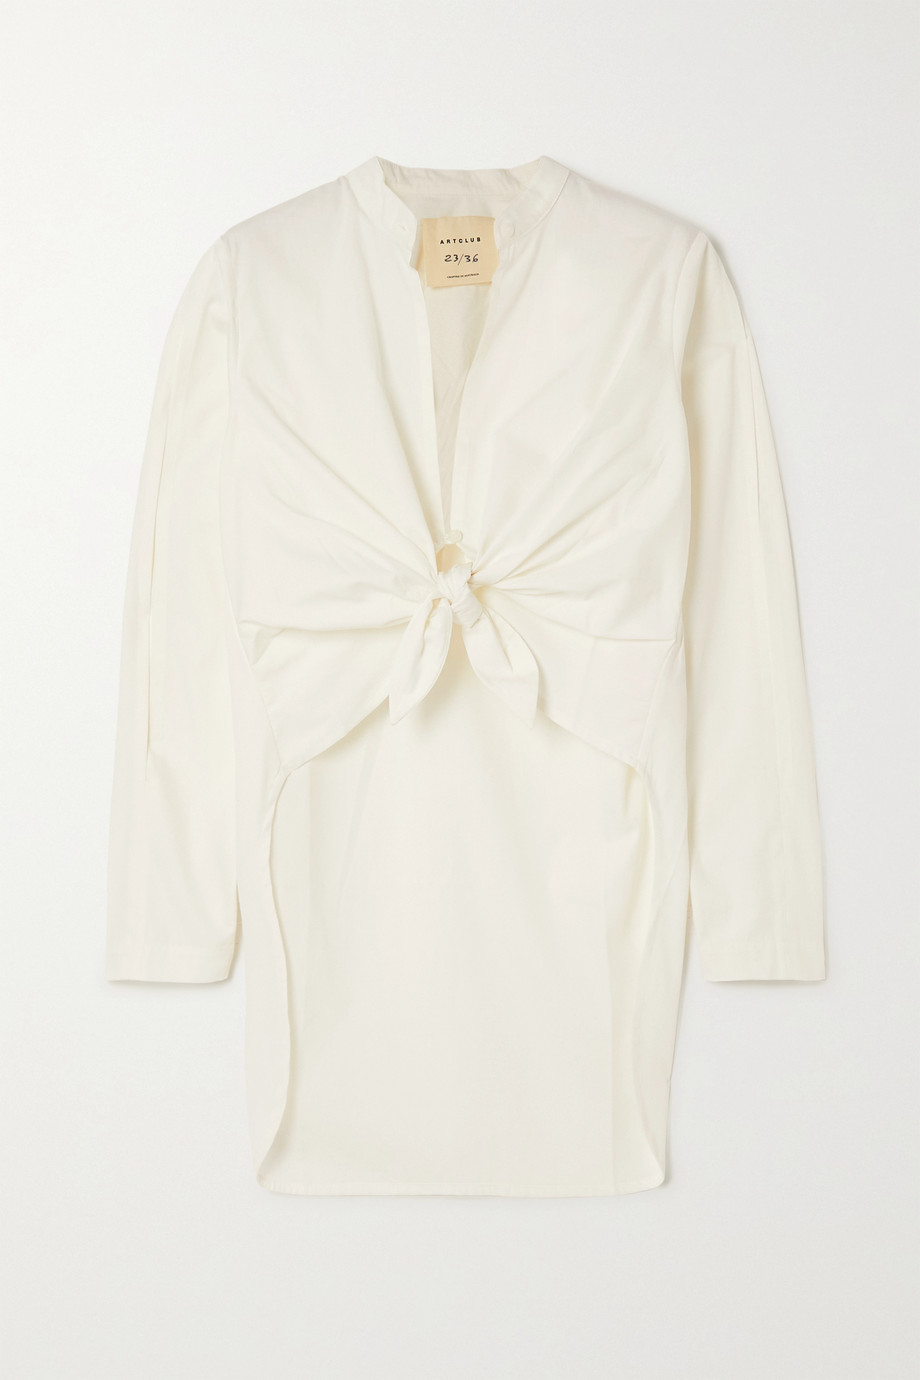 ARTCLUB + NET SUSTAIN Narciso tie-front cotton Oxford shirt